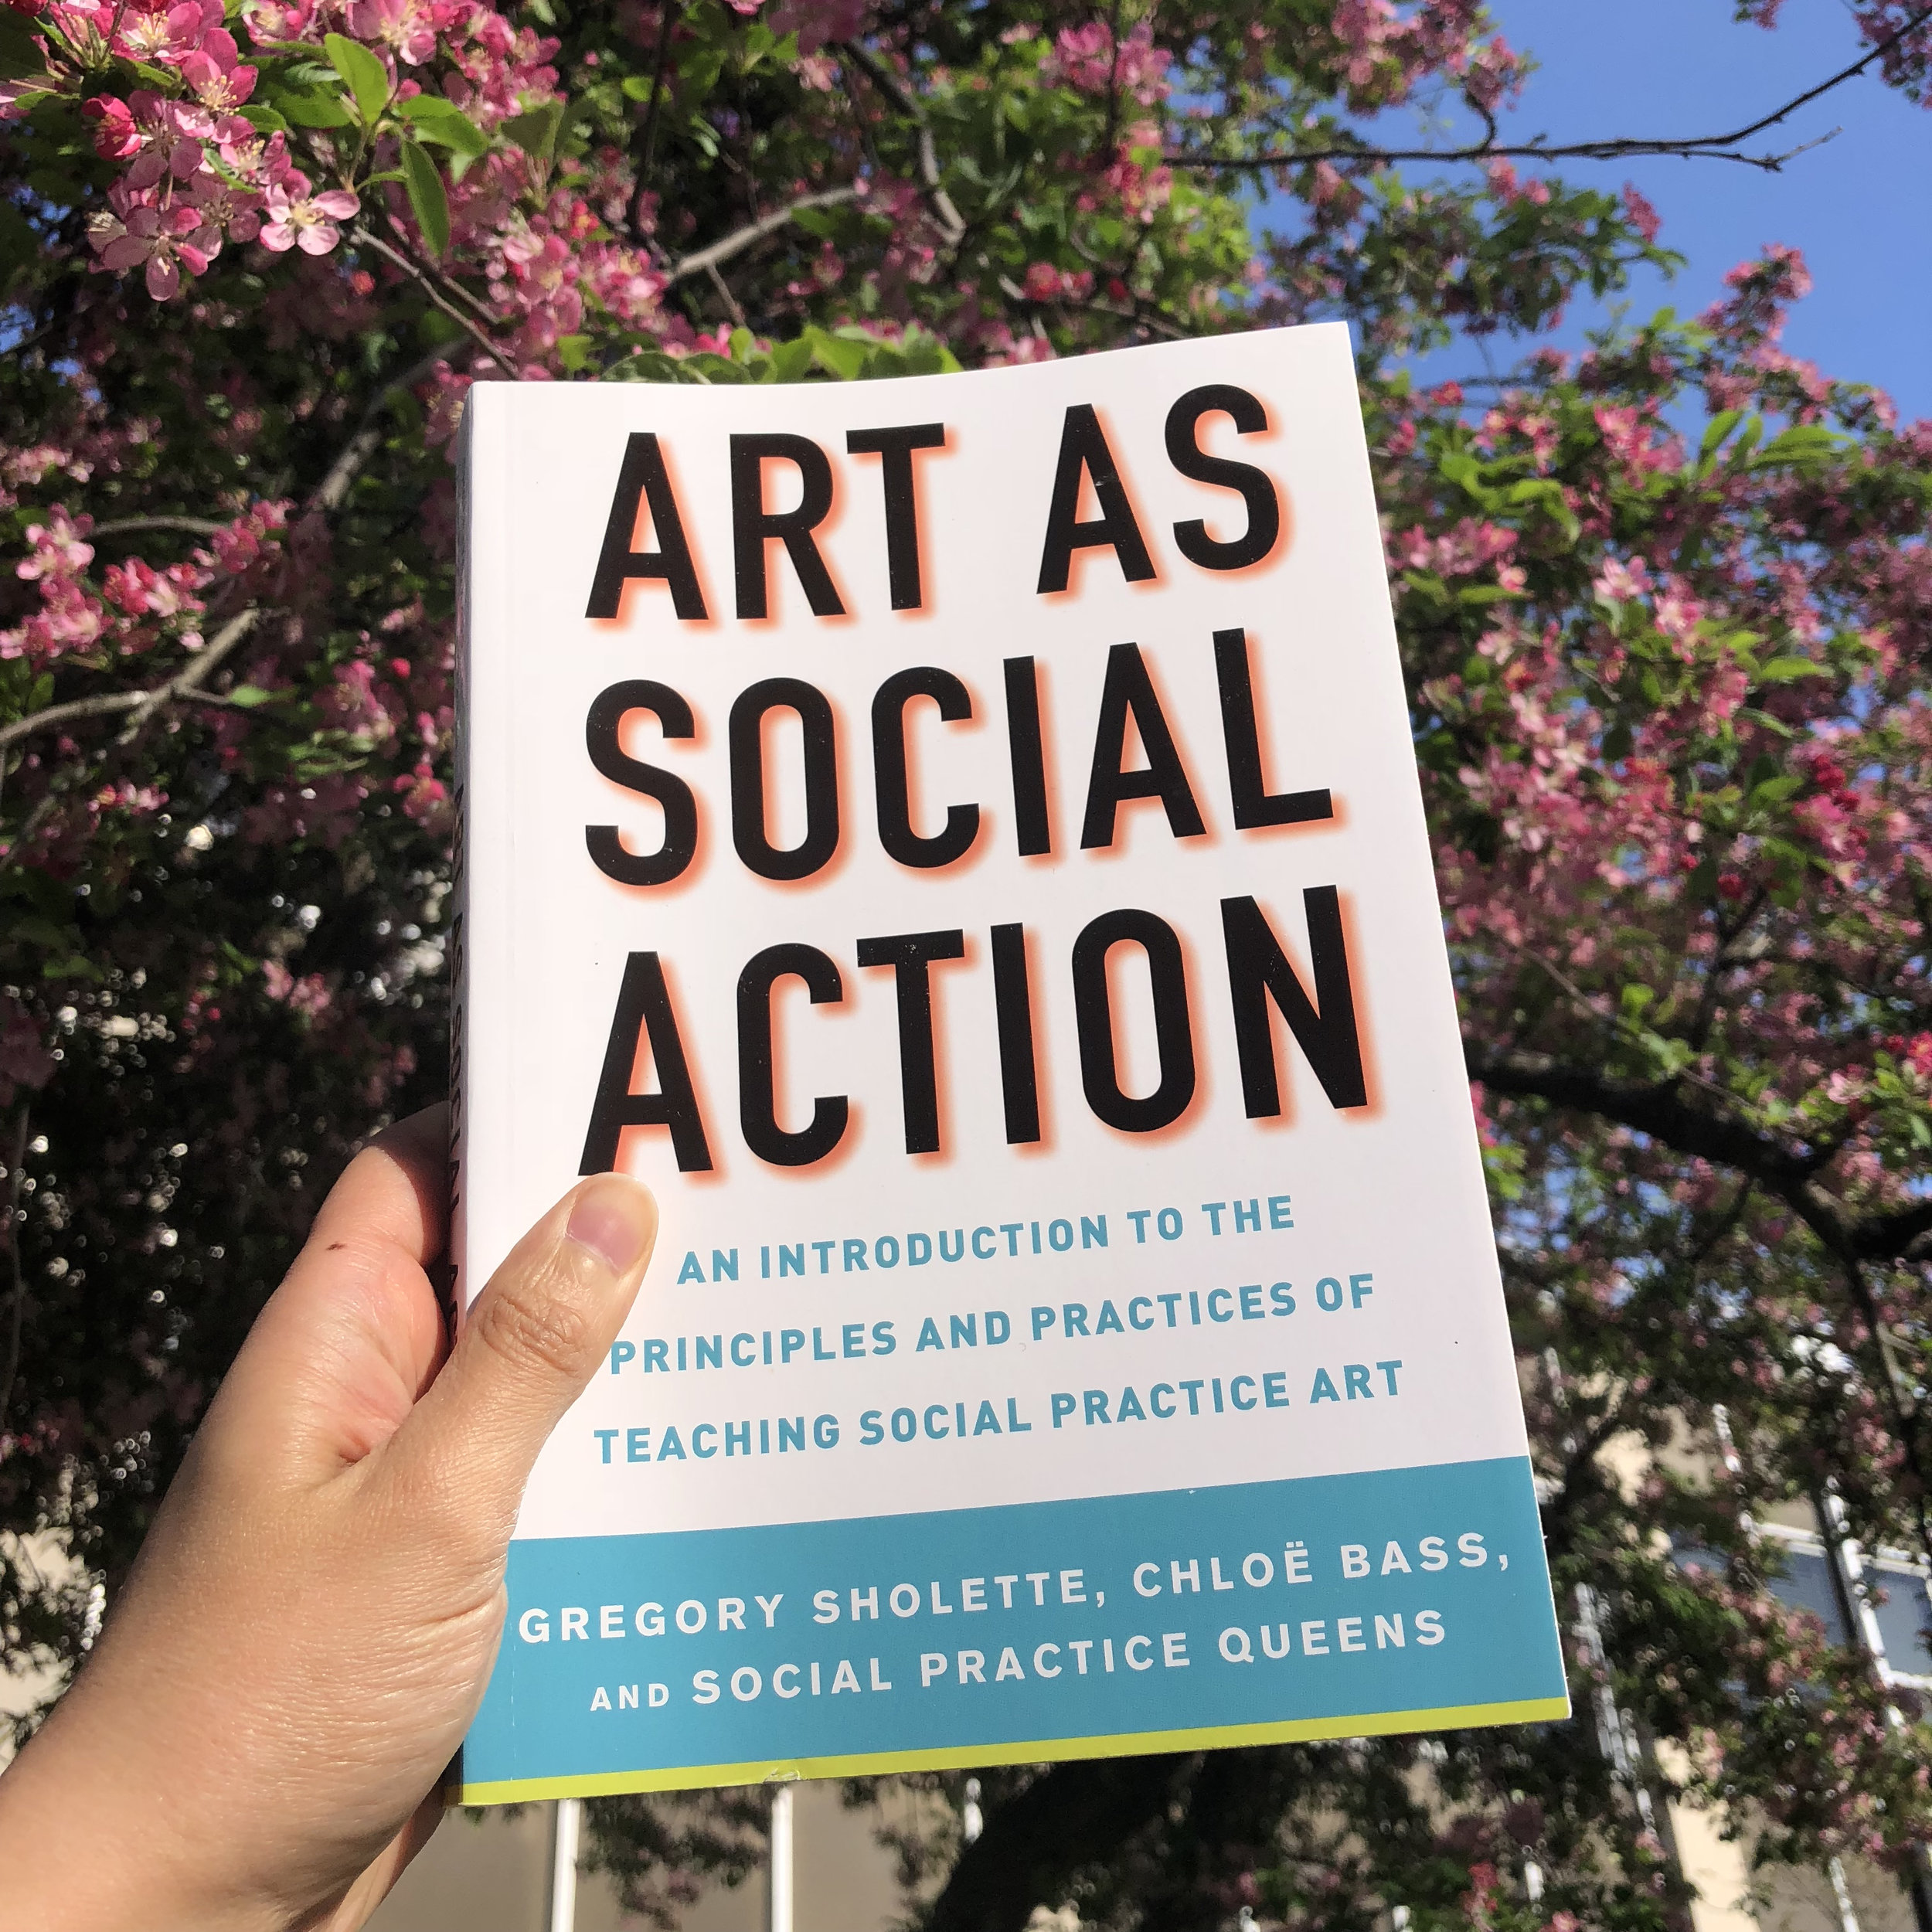 - Art As Social Action (2018), co-edited by myself and Dr. Gregory Sholette, is both a general introduction to and an illustrated, practical textbook for the field of social practice, an art medium that has been gaining popularity in the public sphere. With content arranged thematically around such topics as direct action, alternative organizing, urban imaginaries, anti-bias work, and collective learning, among others, Art as Social Action is a comprehensive manual for teachers about how to teach art as social practice. Along with a series of introductions by leading social practice artists in the field, valuable lesson plans offer examples of pedagogical projects for instructors at both college and high school levels with contributions written by prominent social practice artists, teachers, and thinkers. Available from Allworth Press.